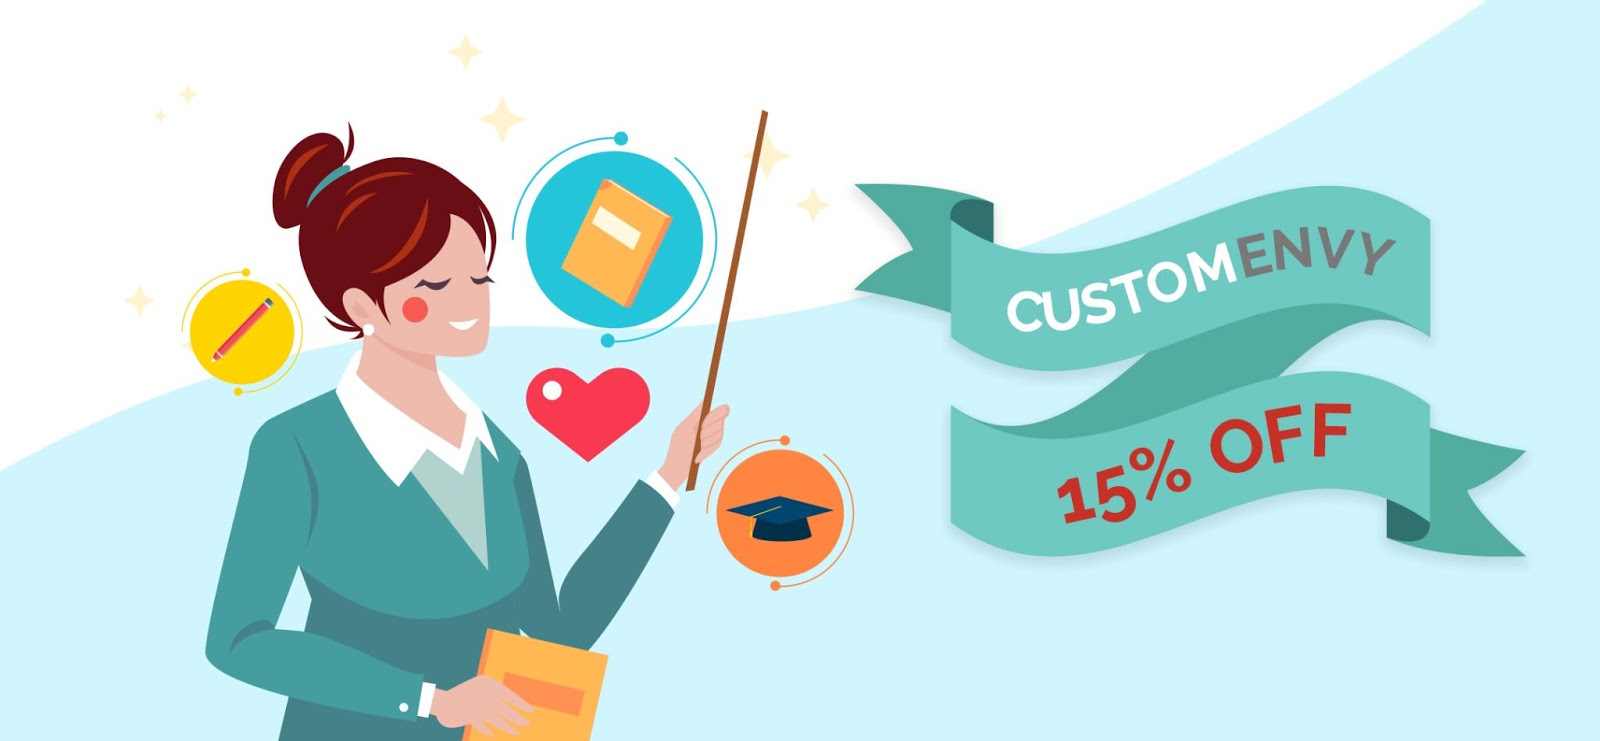 Make Learning More Fun, Enjoy 15% Off with Custom Envy